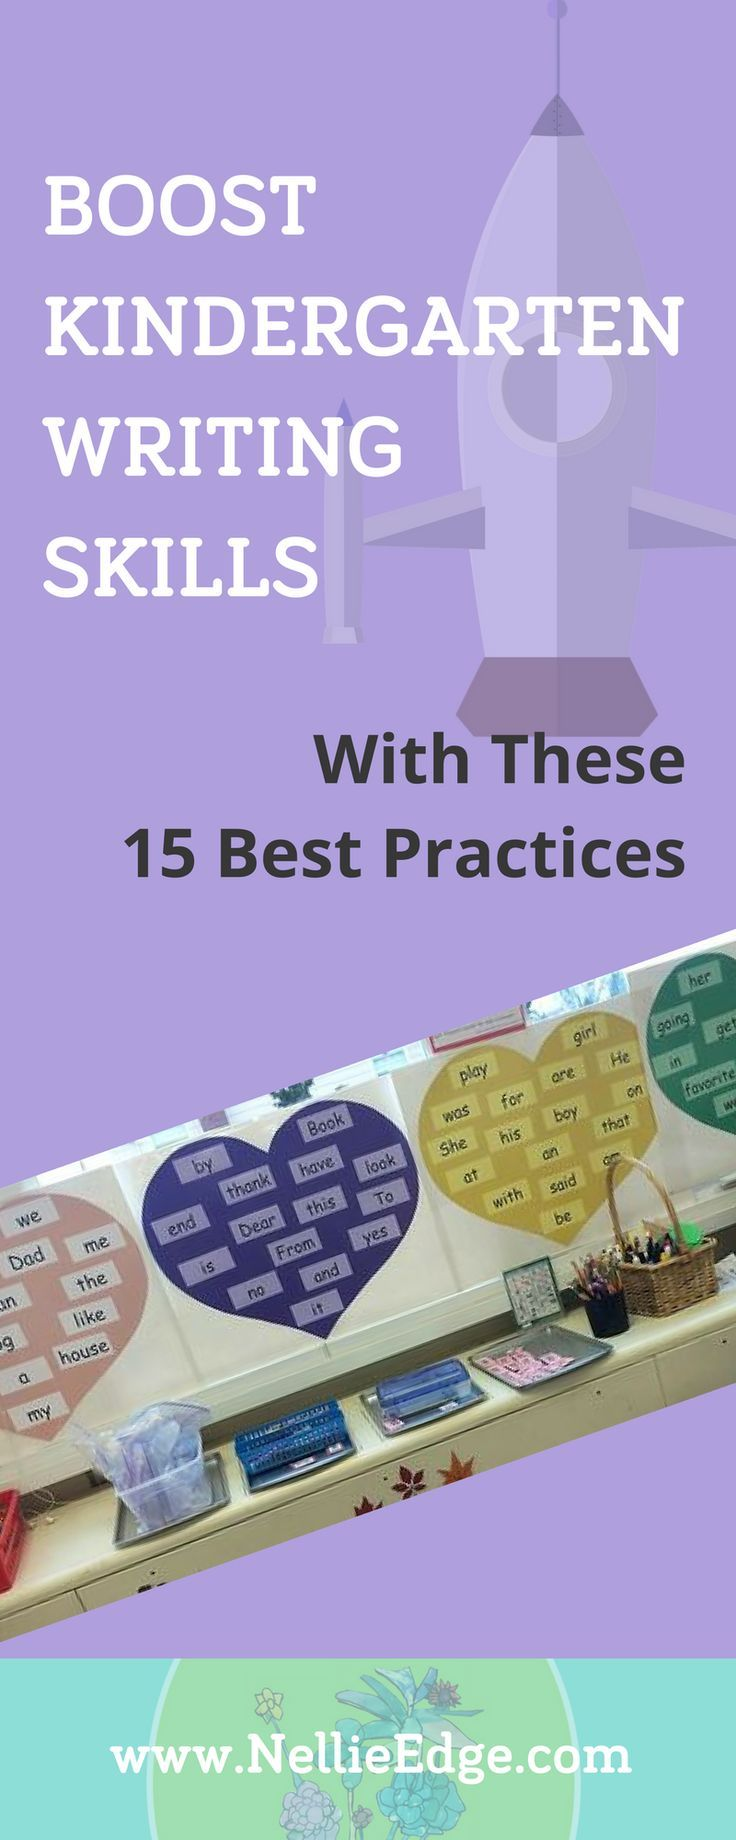 """Boost Kindergarten Writing Skills with These 15 Best Practices: Start with these 15 best practices for kindergarten writing. Fluency with meaningful sight word sentences (we call them """"heart word"""" sentences) is vital to kindergarten writing workshop success. Have high expectations. Give students crystal-clear learning targets. Use authentic kindergarten-friendly center activities. Learn more at http://nellieedge.com/weekly-focus/kindergartners-writing-proficiency/"""